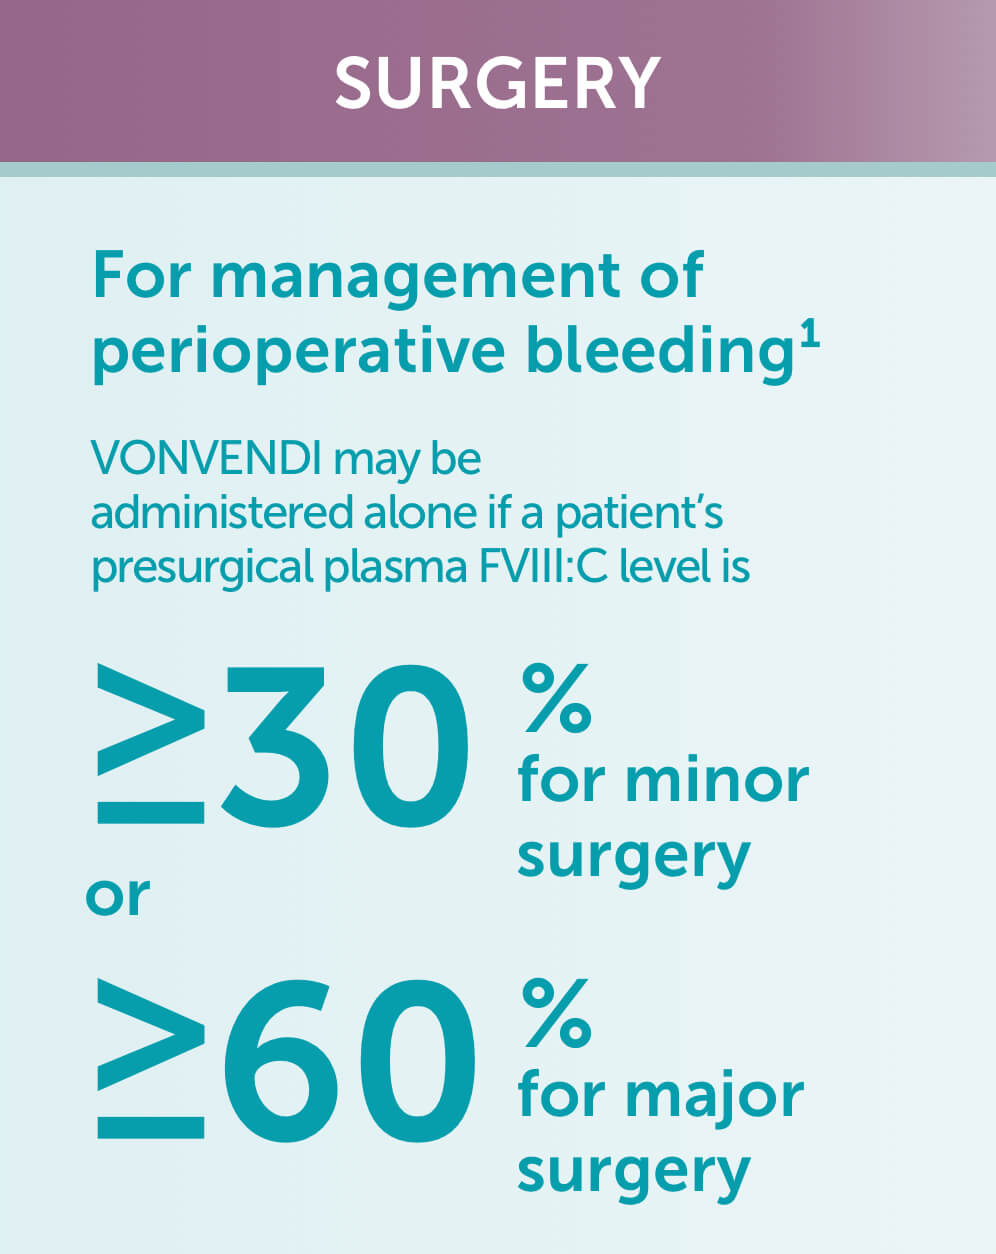 Preoperative dosing for elective surgery: VONVENDI may be administered alone if a patient's presurgical plasma FVIII:C level is ≥ 30% for minor surgeries and ≥ 60% for major surgeries.